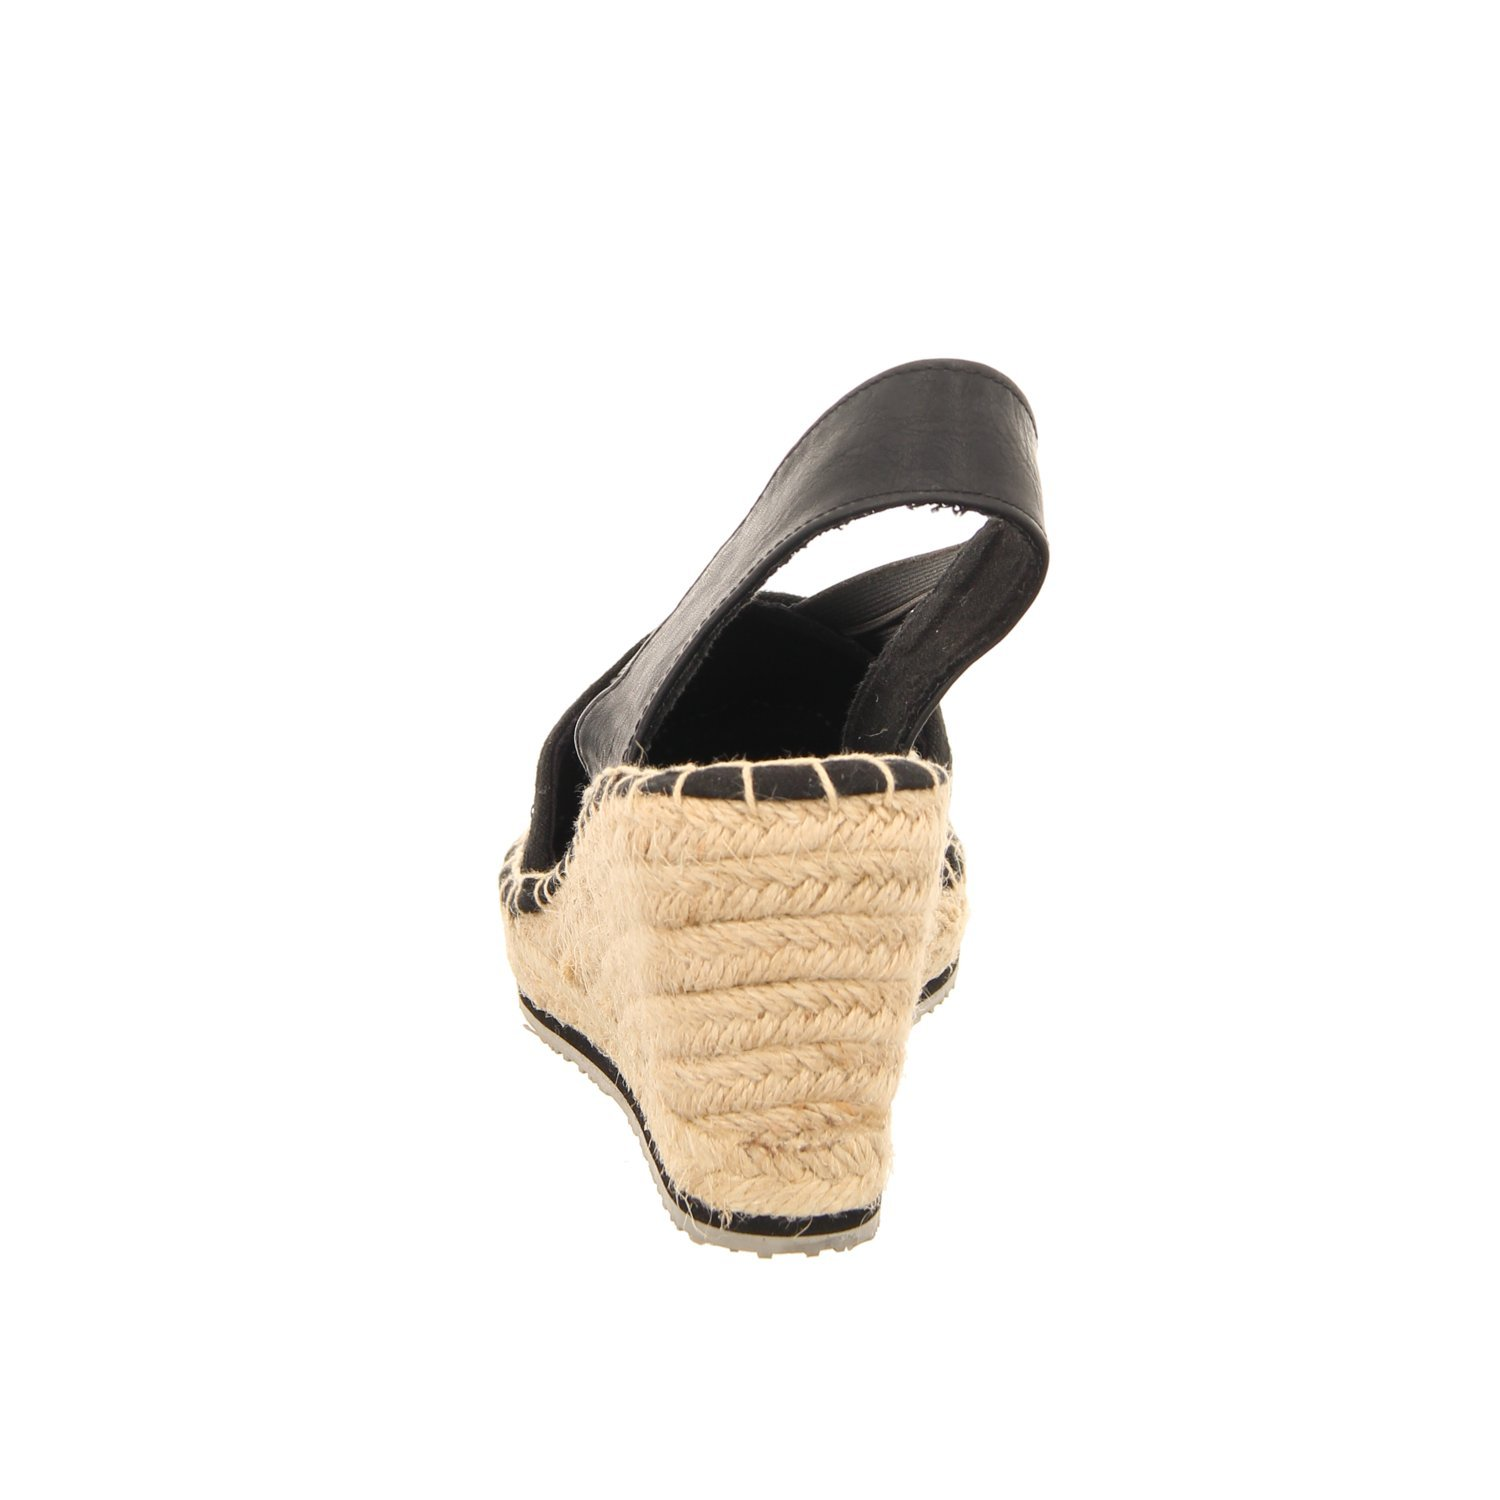 Comb 098 Tozzi 22 28 Sandals Women's Fashion Marco Black 29610 apvqE